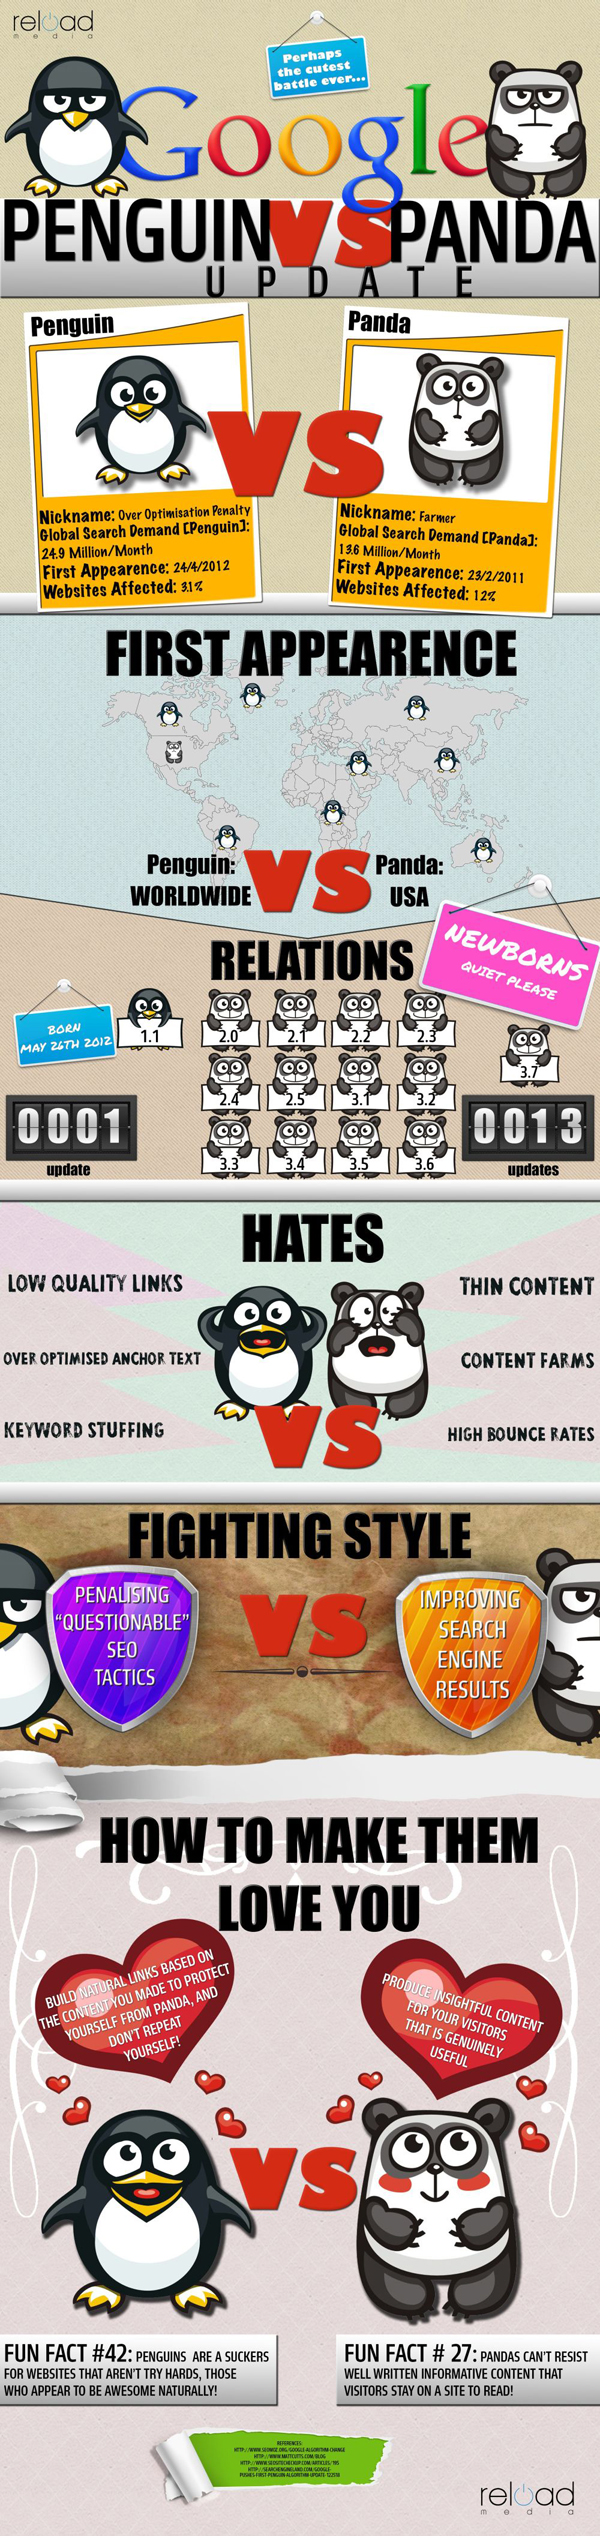 panda-vs-penguin-infographic